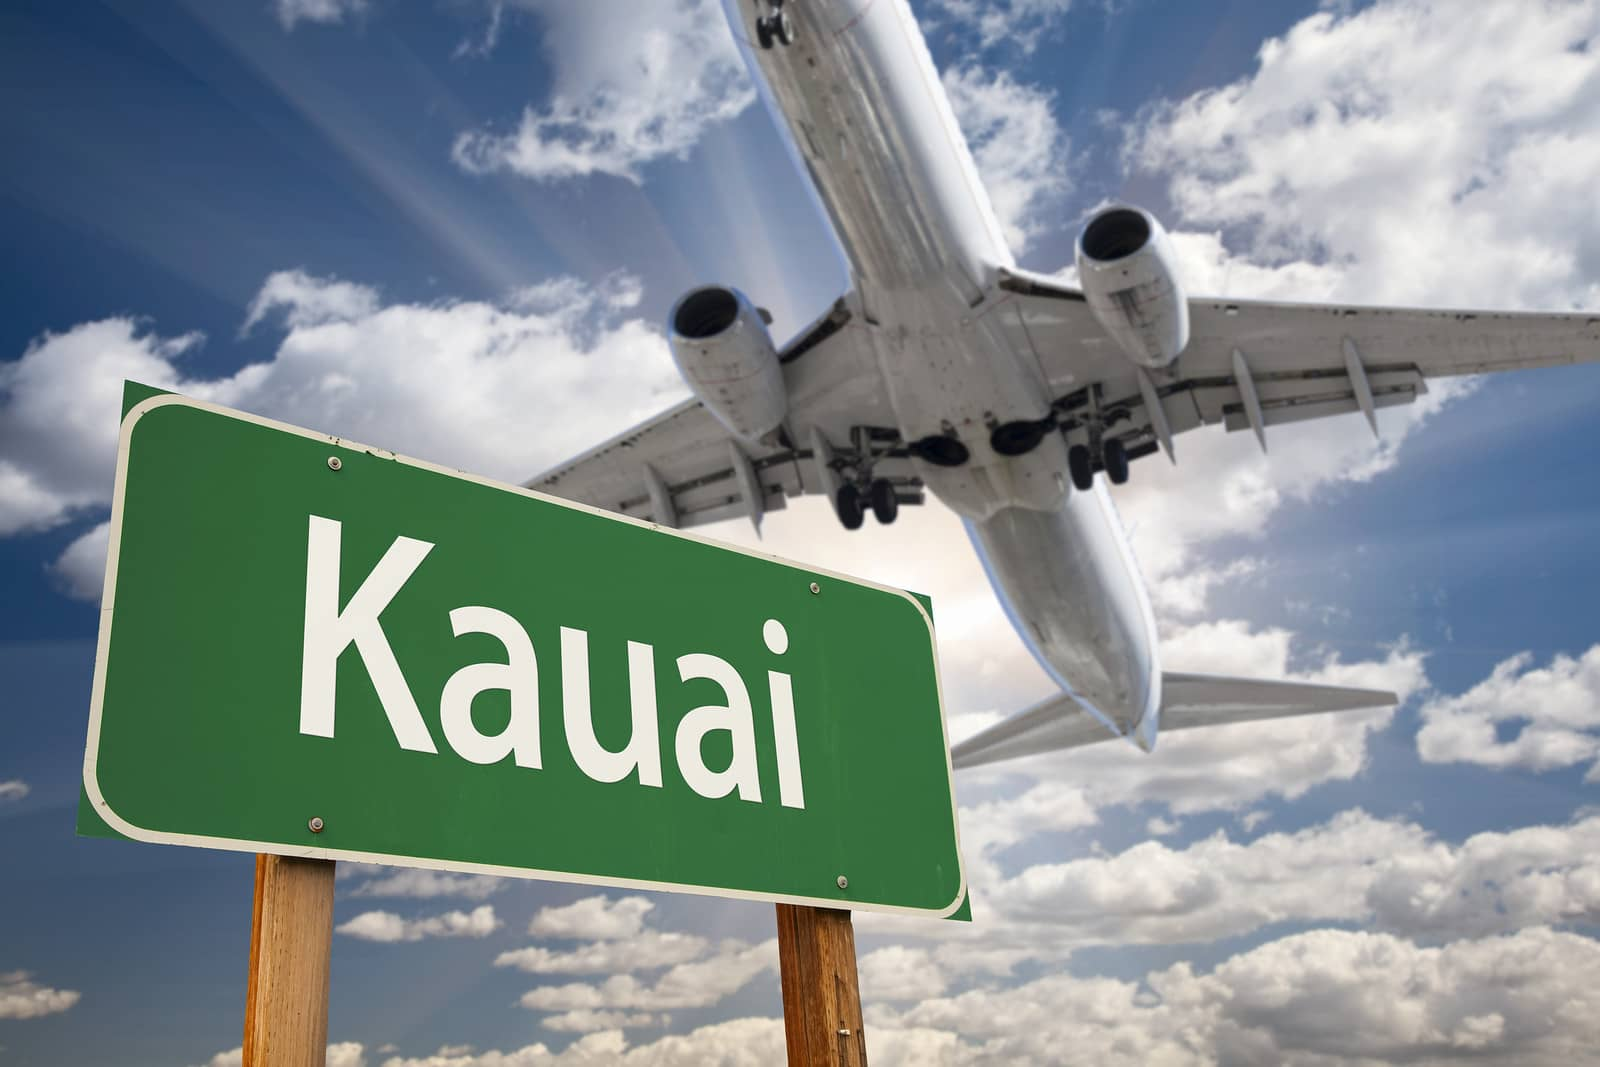 Kauai Green Road Sign and Airplane Above with Dramatic Blue Sky and Clouds